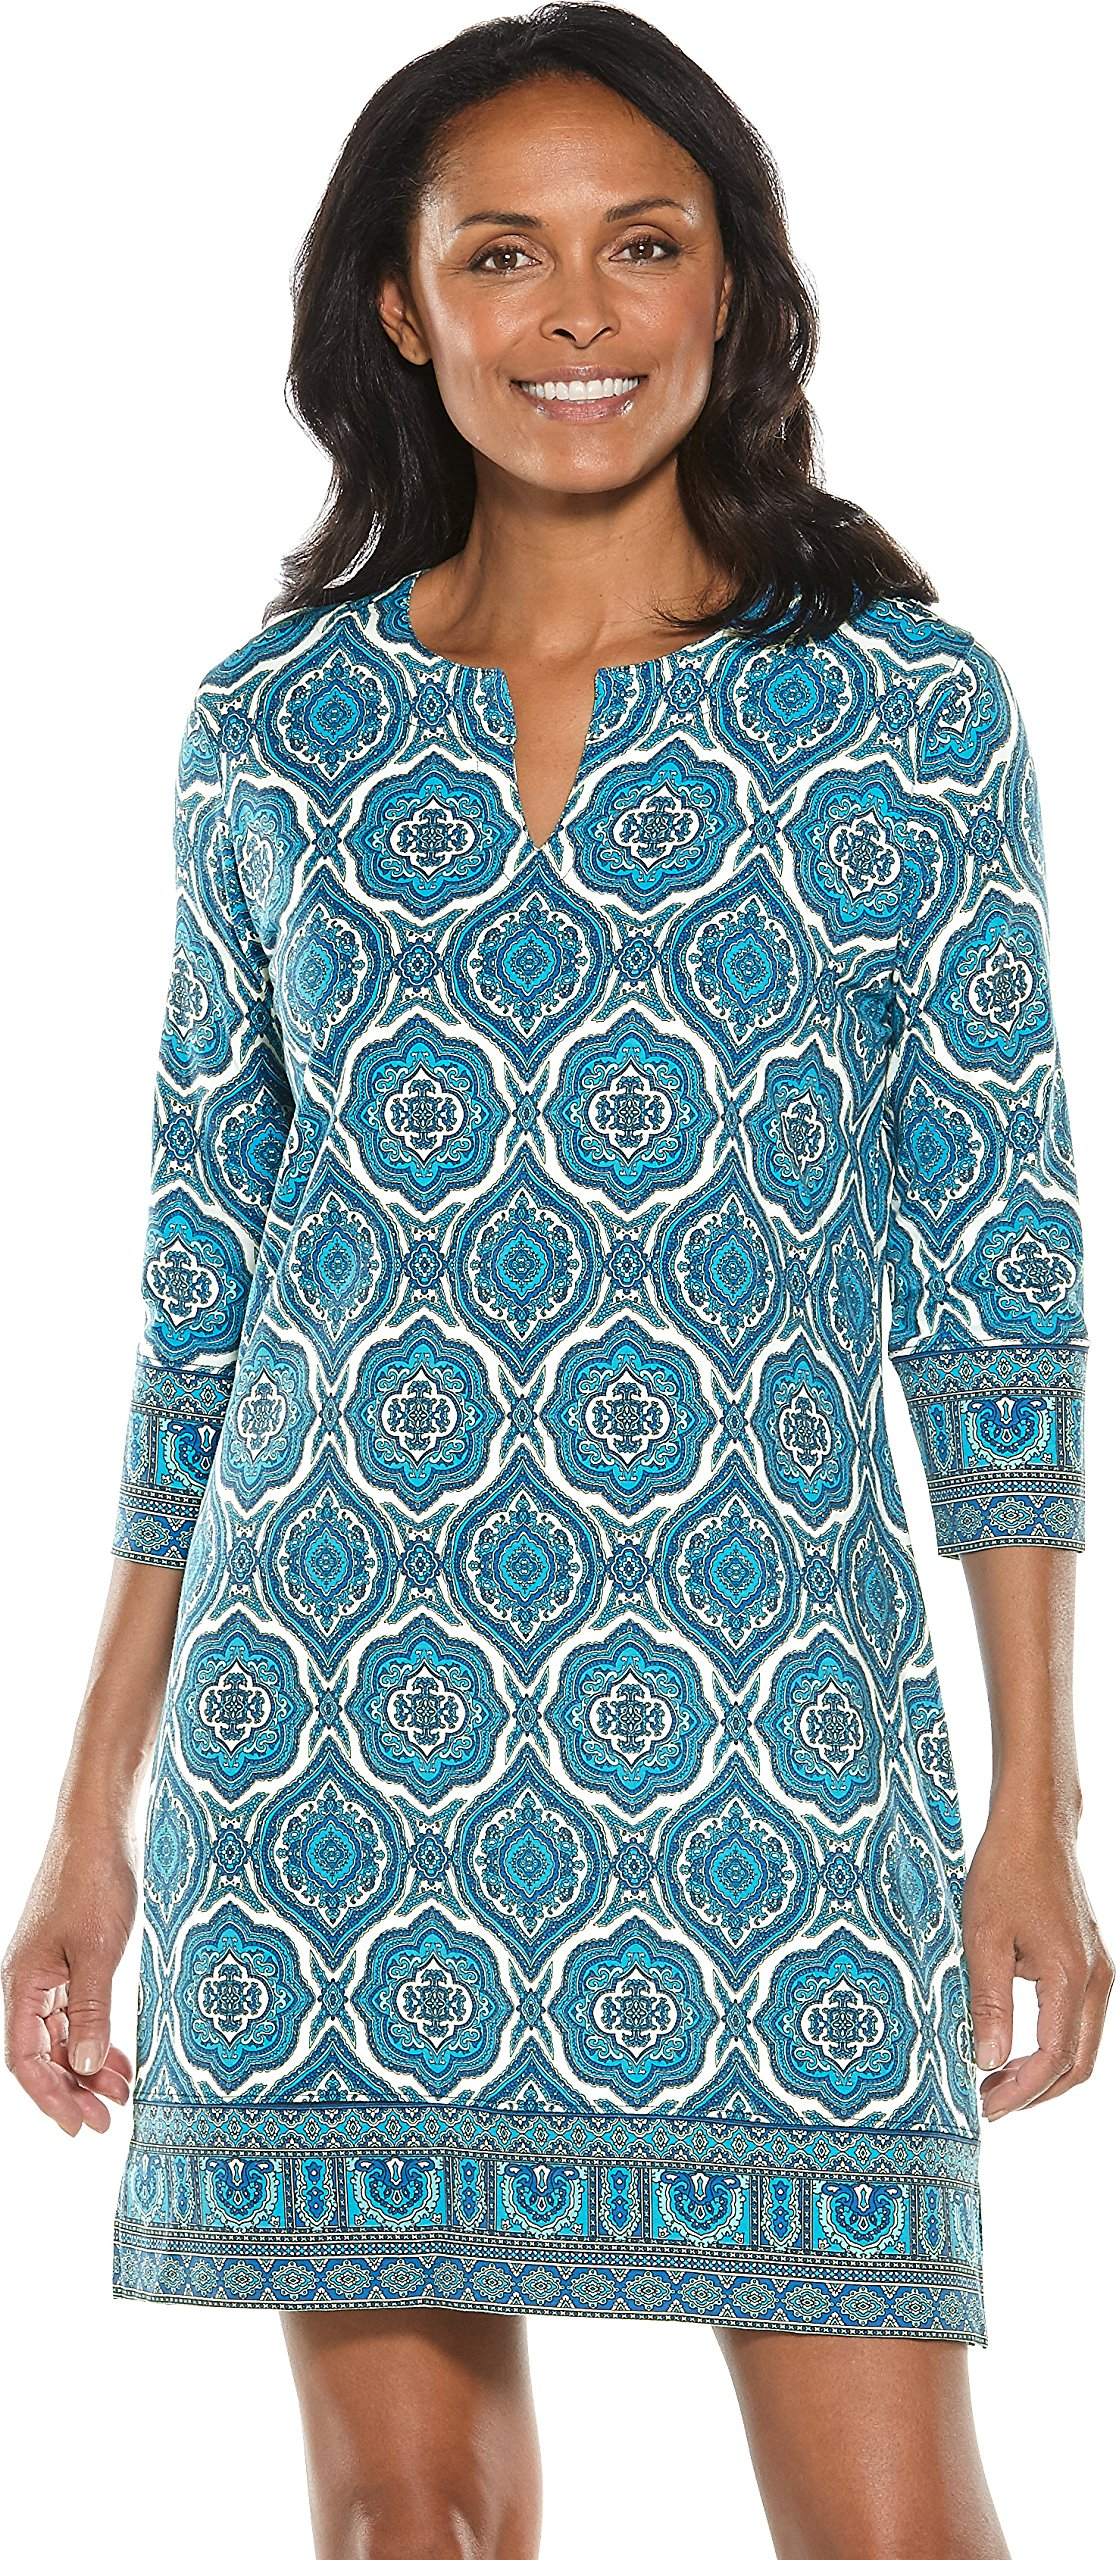 Coolibar UPF 50+ Women's Oceanside Tunic Dress - Sun Protective (3X- Baja Blue Beach Medallion)